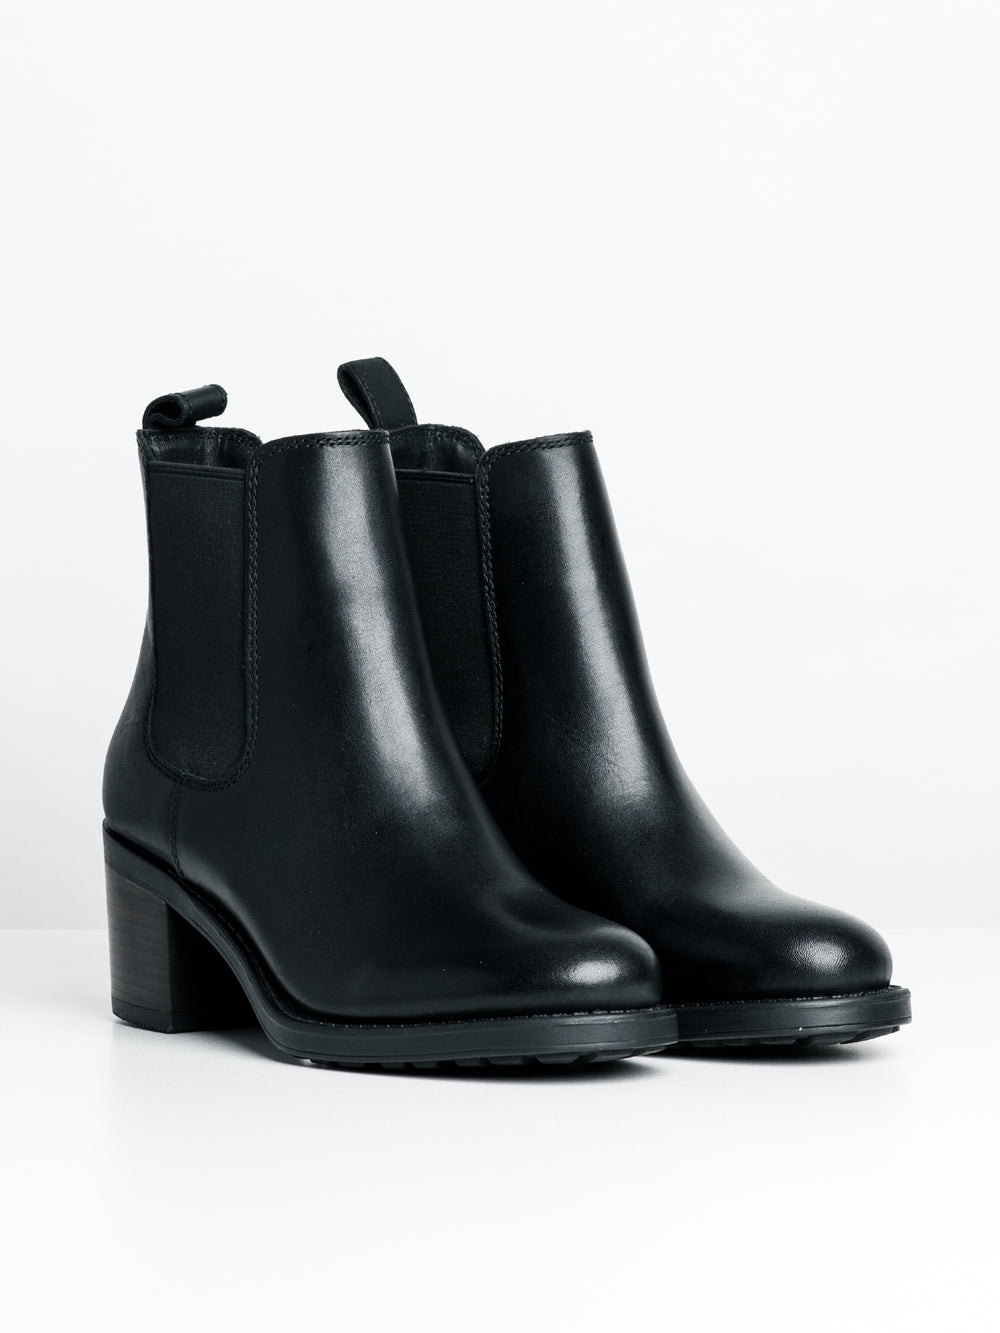 WOMENS FARGO - BLACK